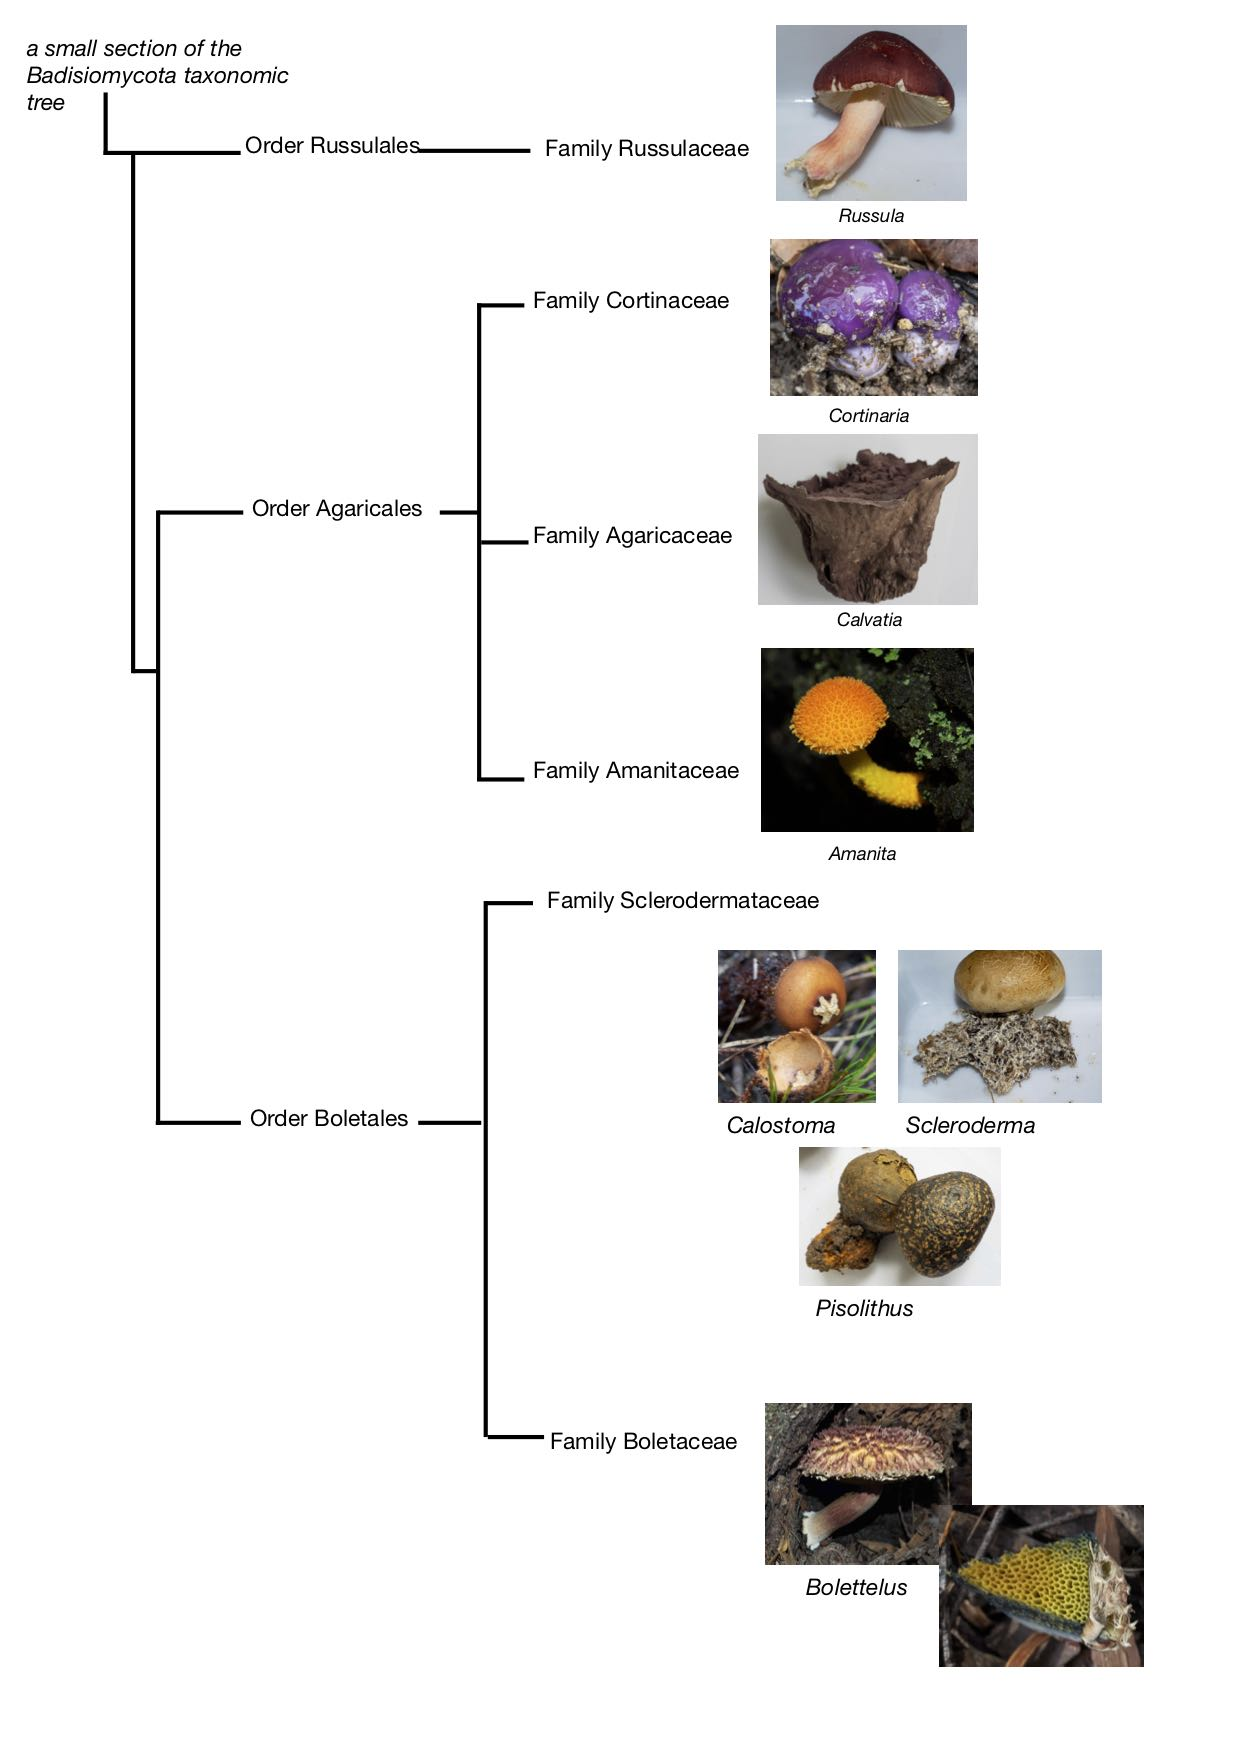 Evolutionary relationships between some familiar fungi